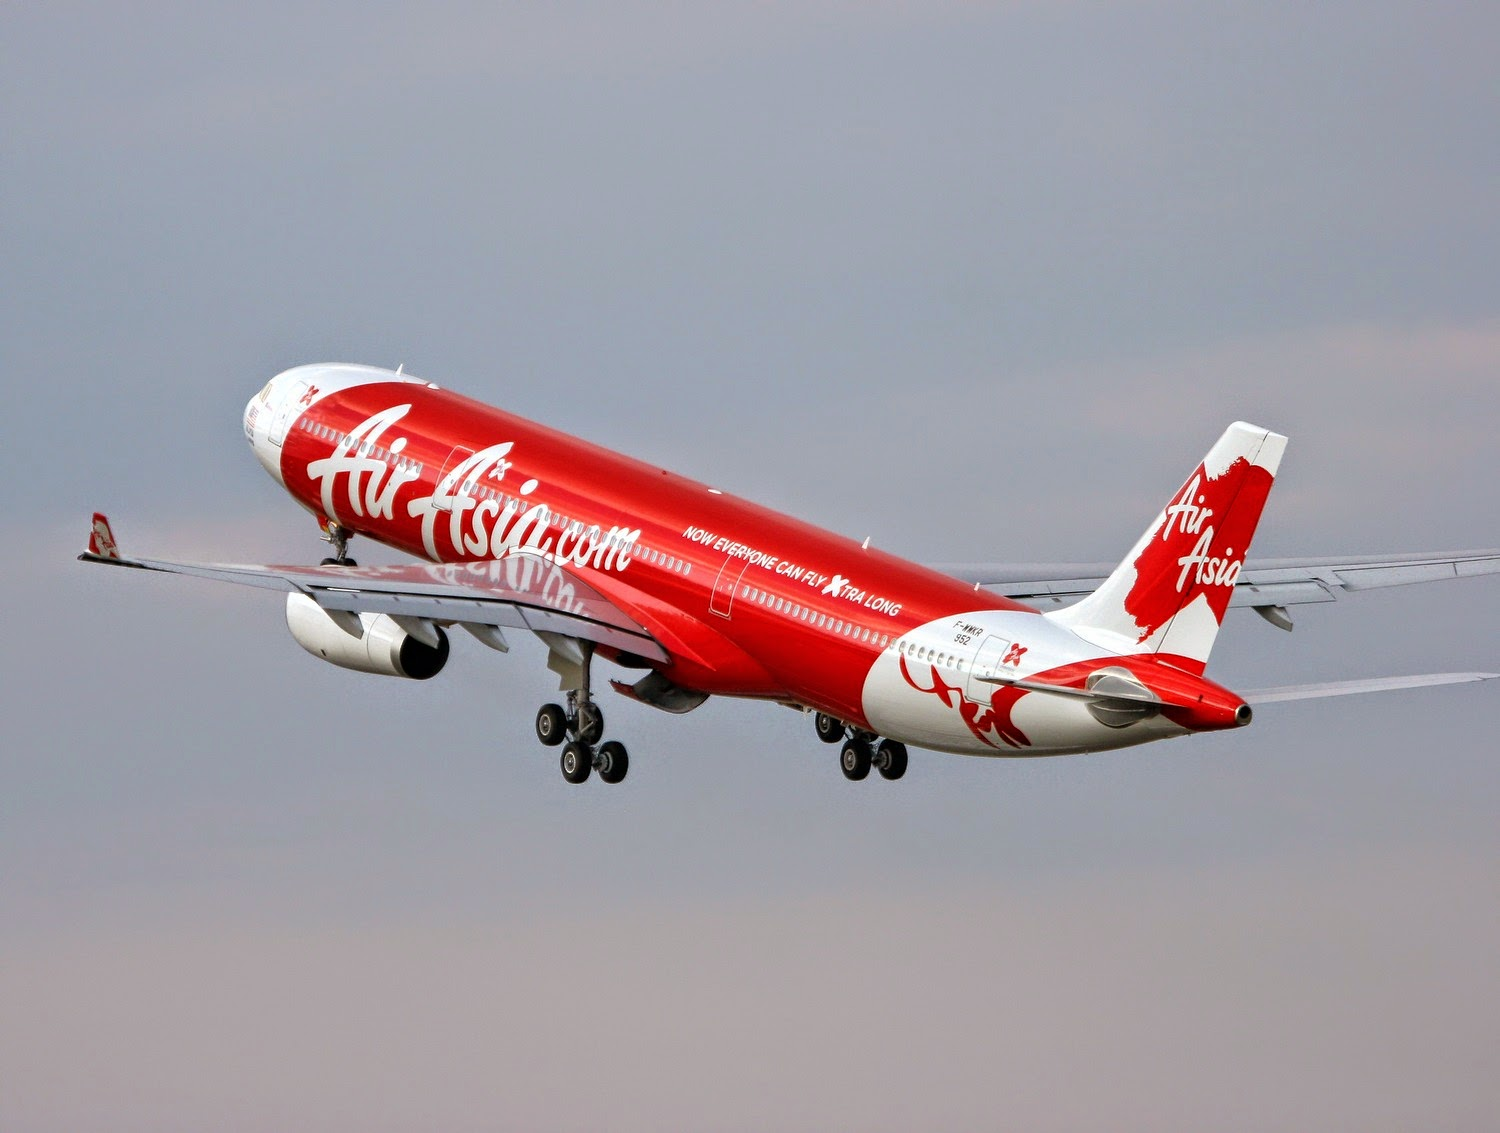 http://www.airasia.com/id/id/promotion/rr2630310.page?cid=eab110diiag